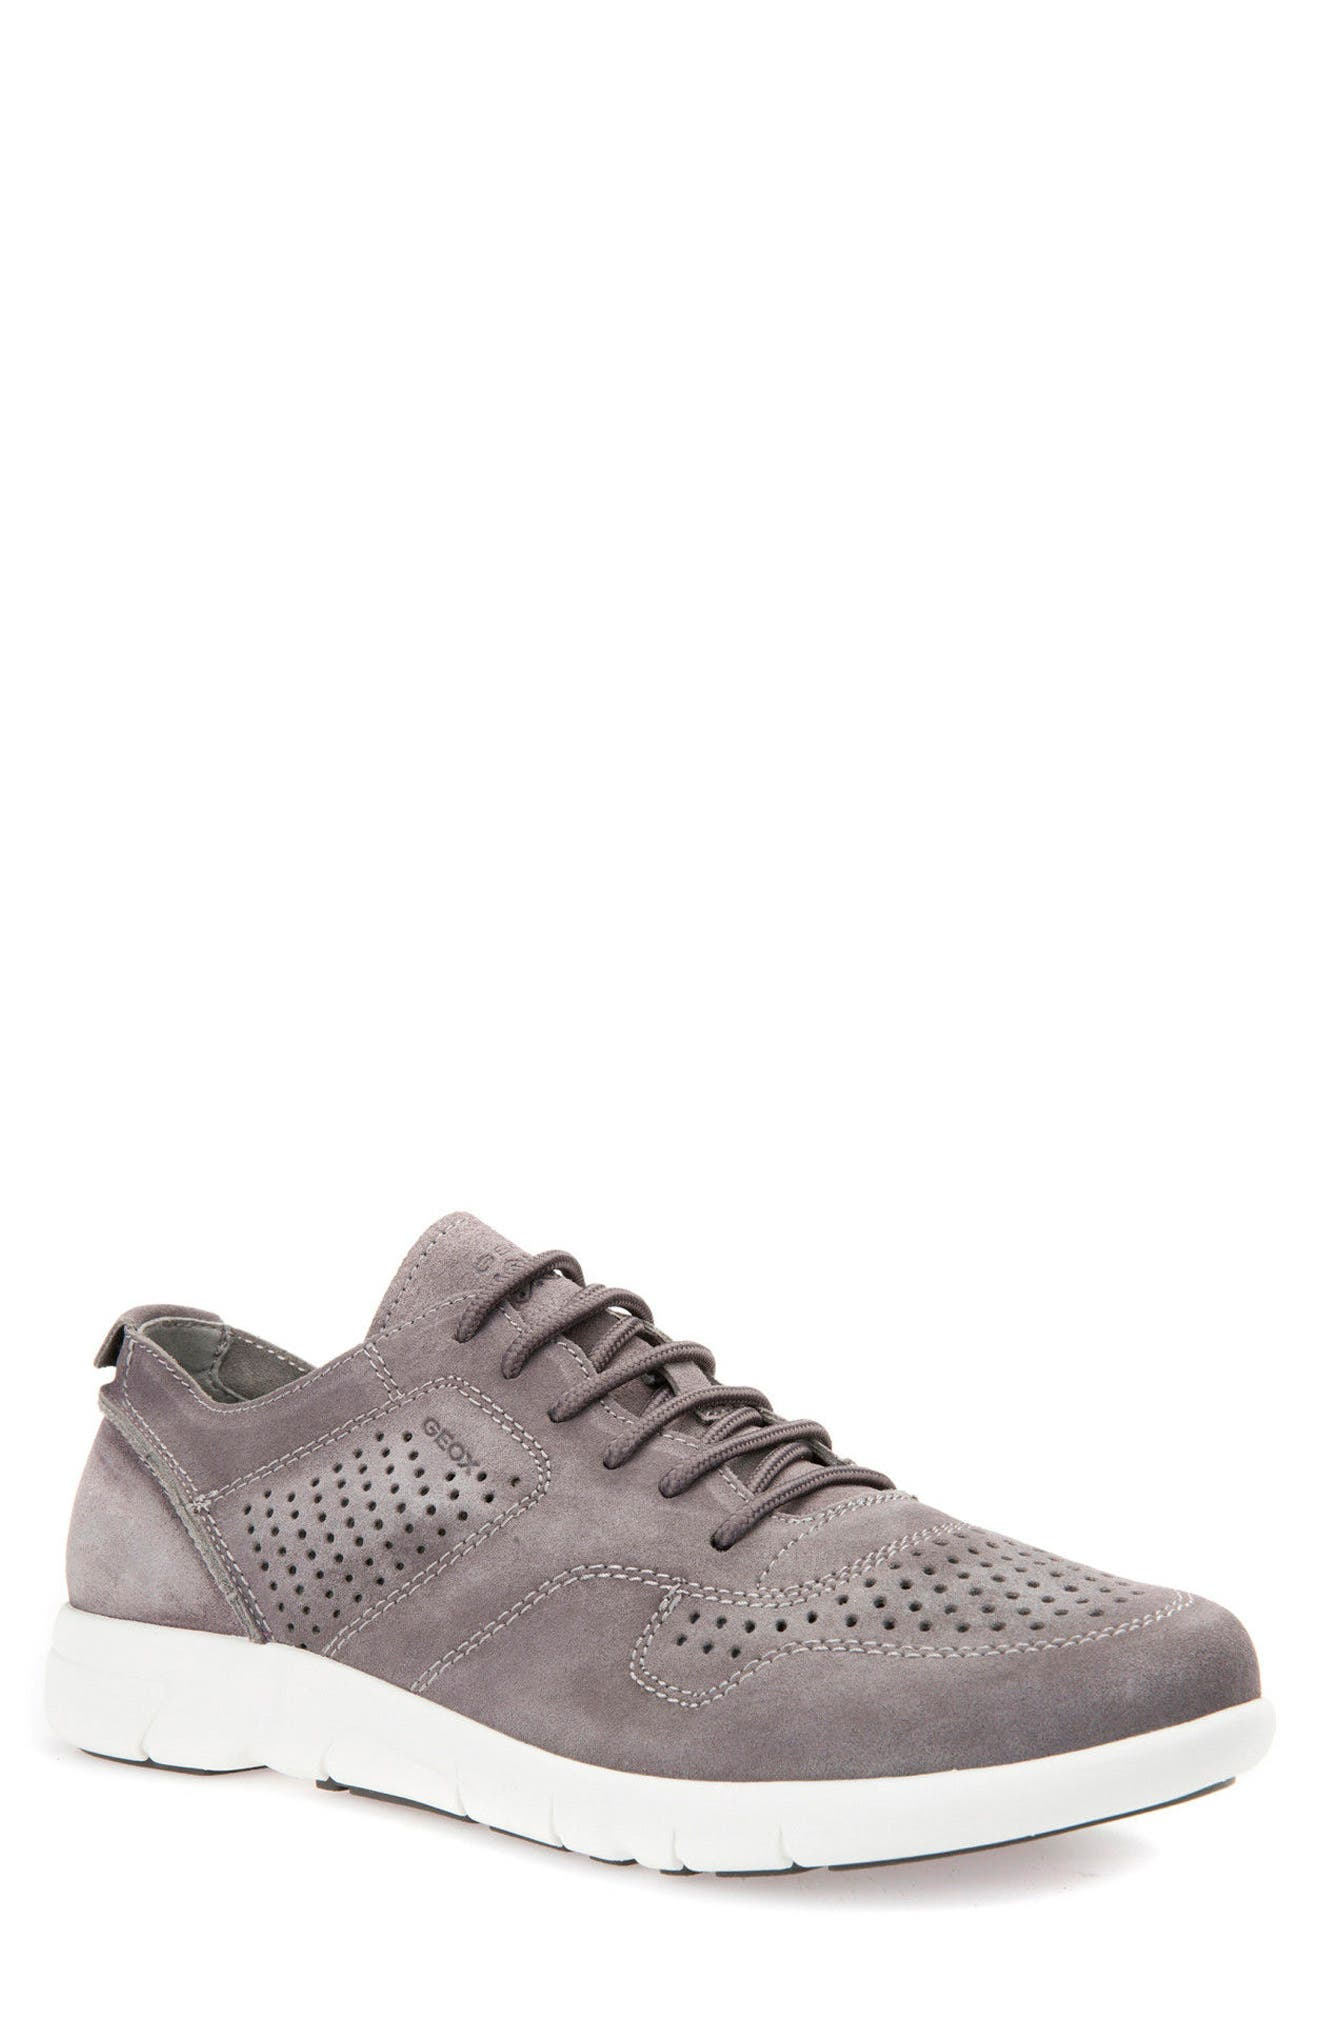 Brattley 2 Perforated Sneaker,                         Main,                         color, 020